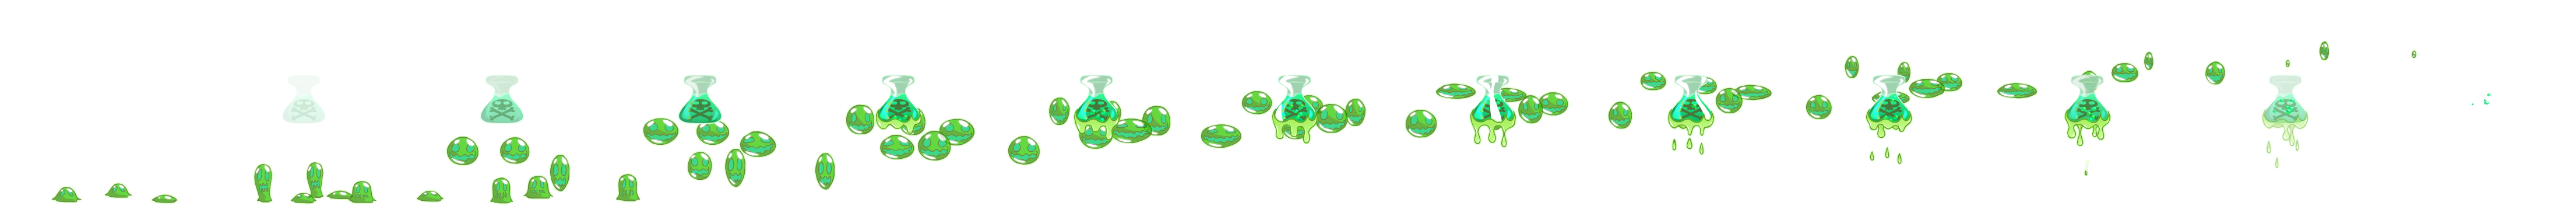 https://images.neopets.com/dome/statuses/poisoned-13-319kb.png